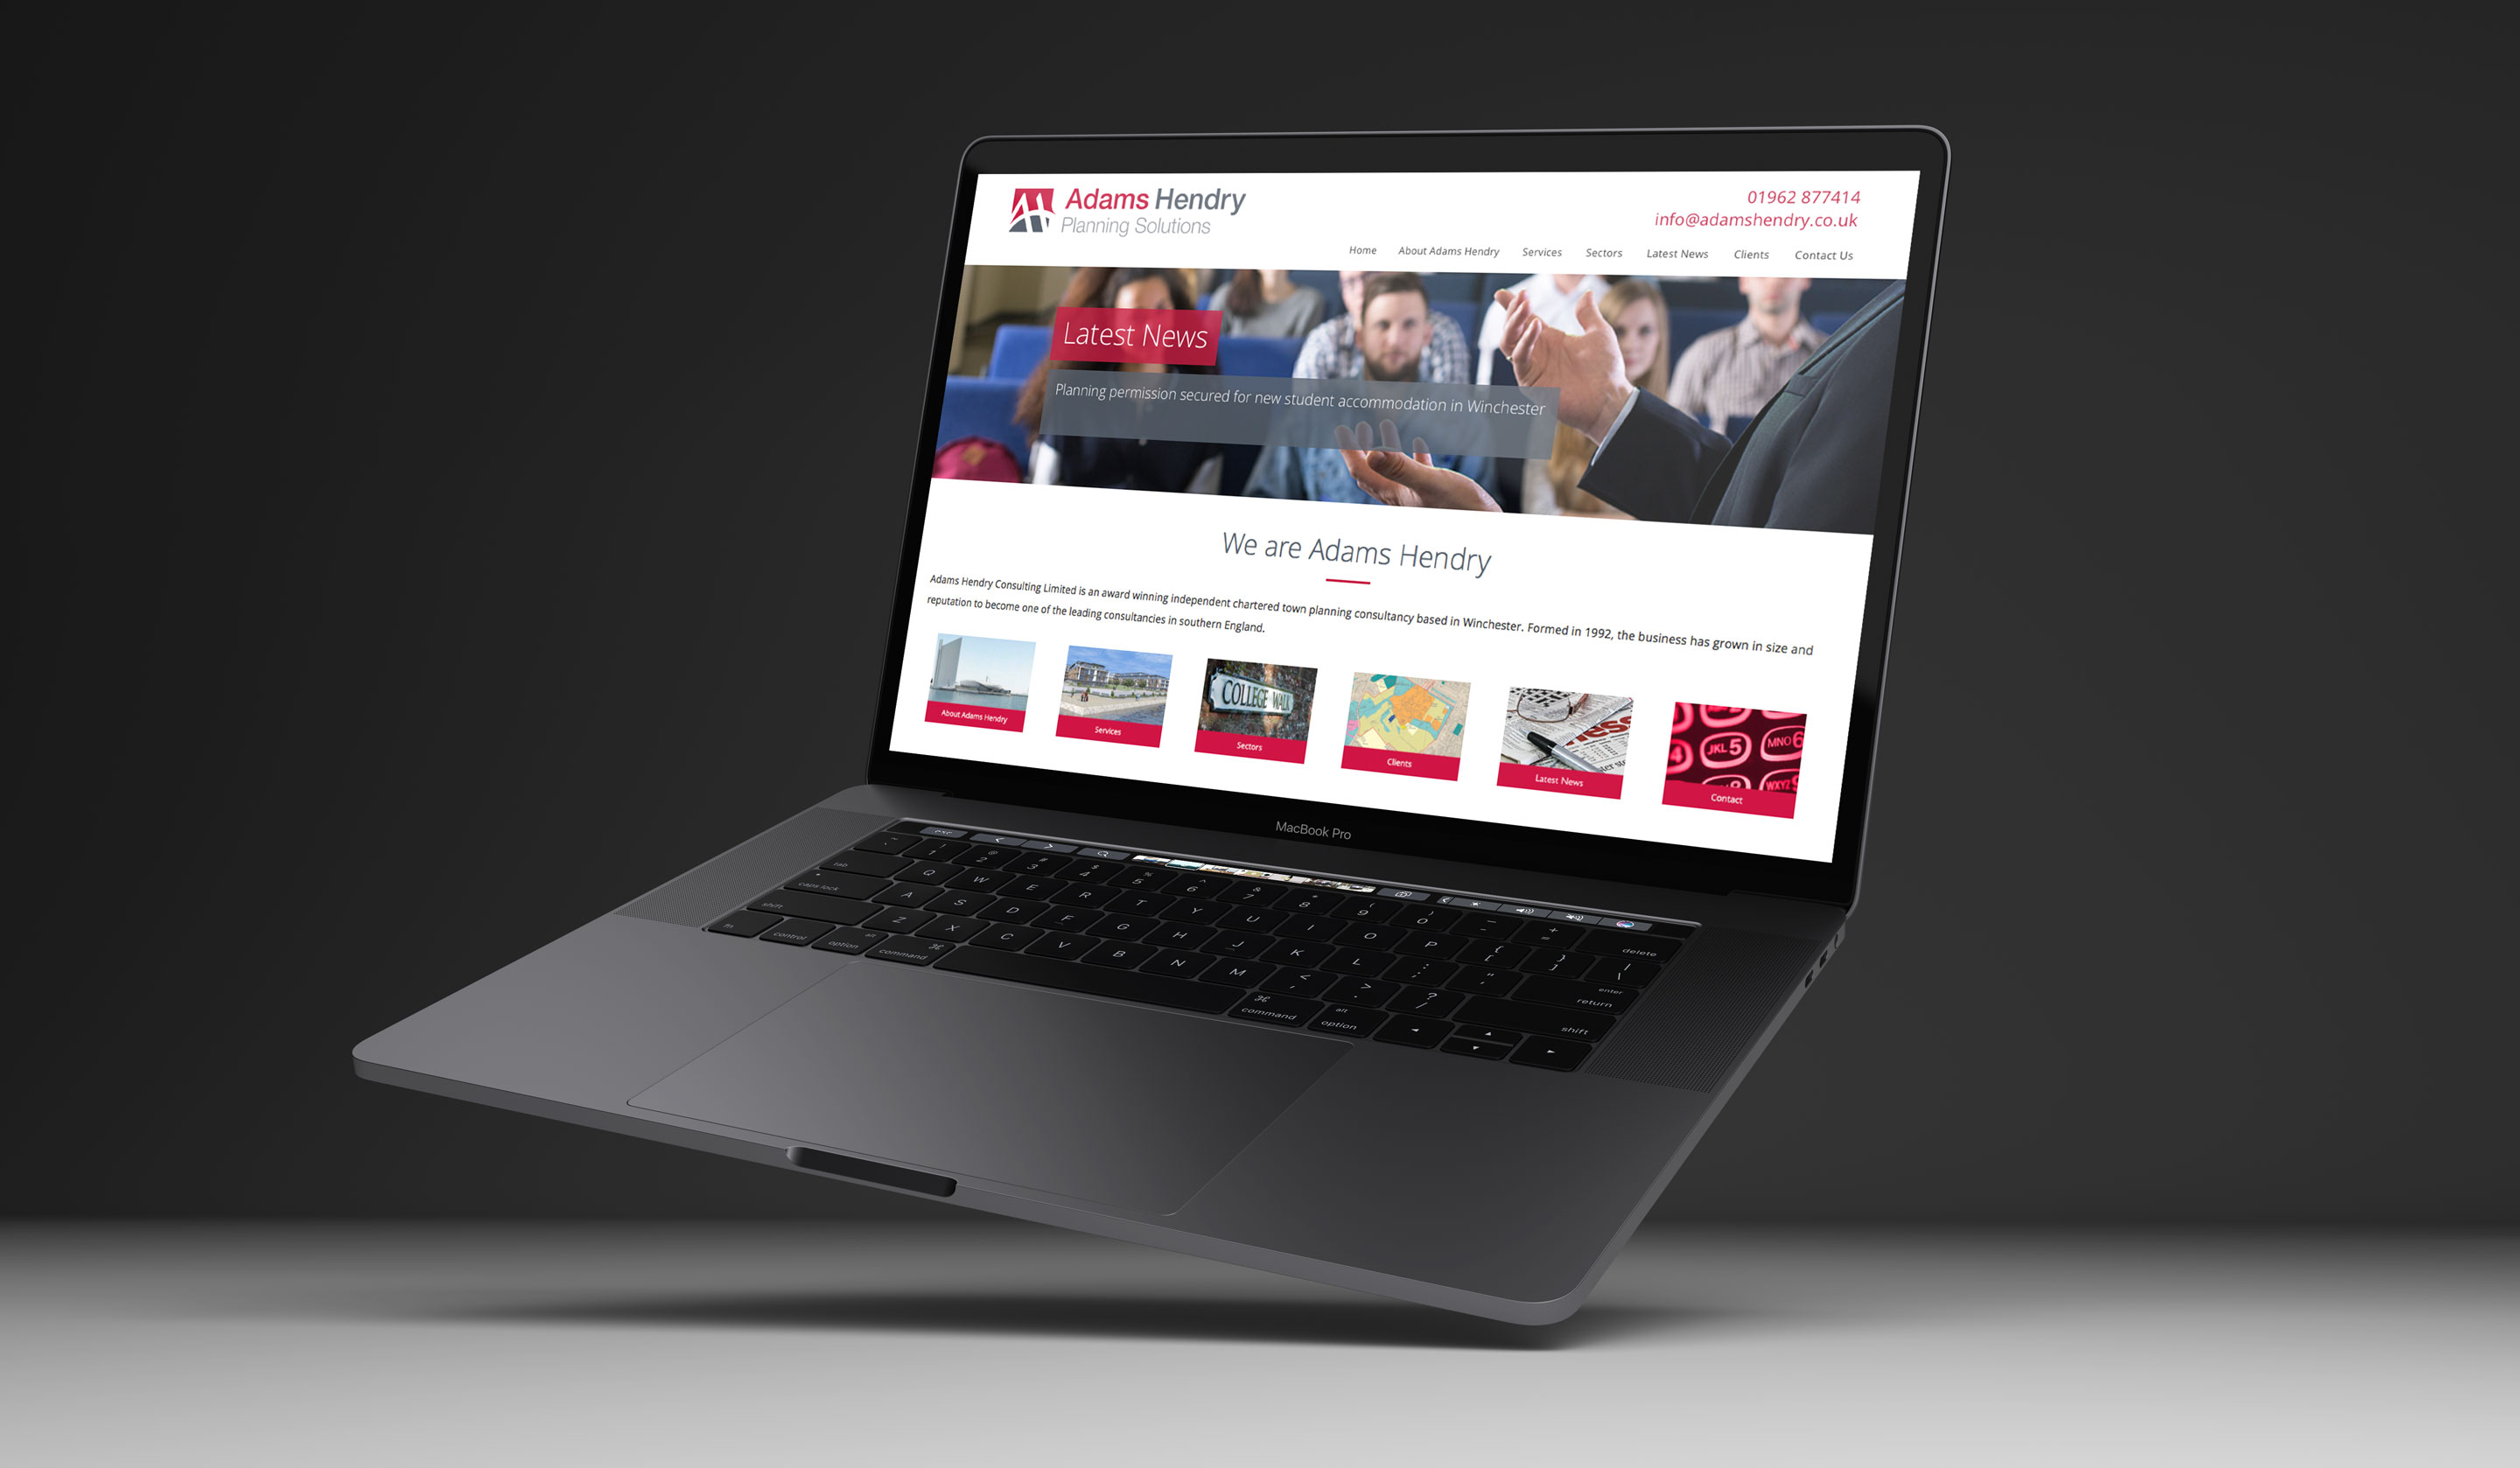 The responsive website on a laptop